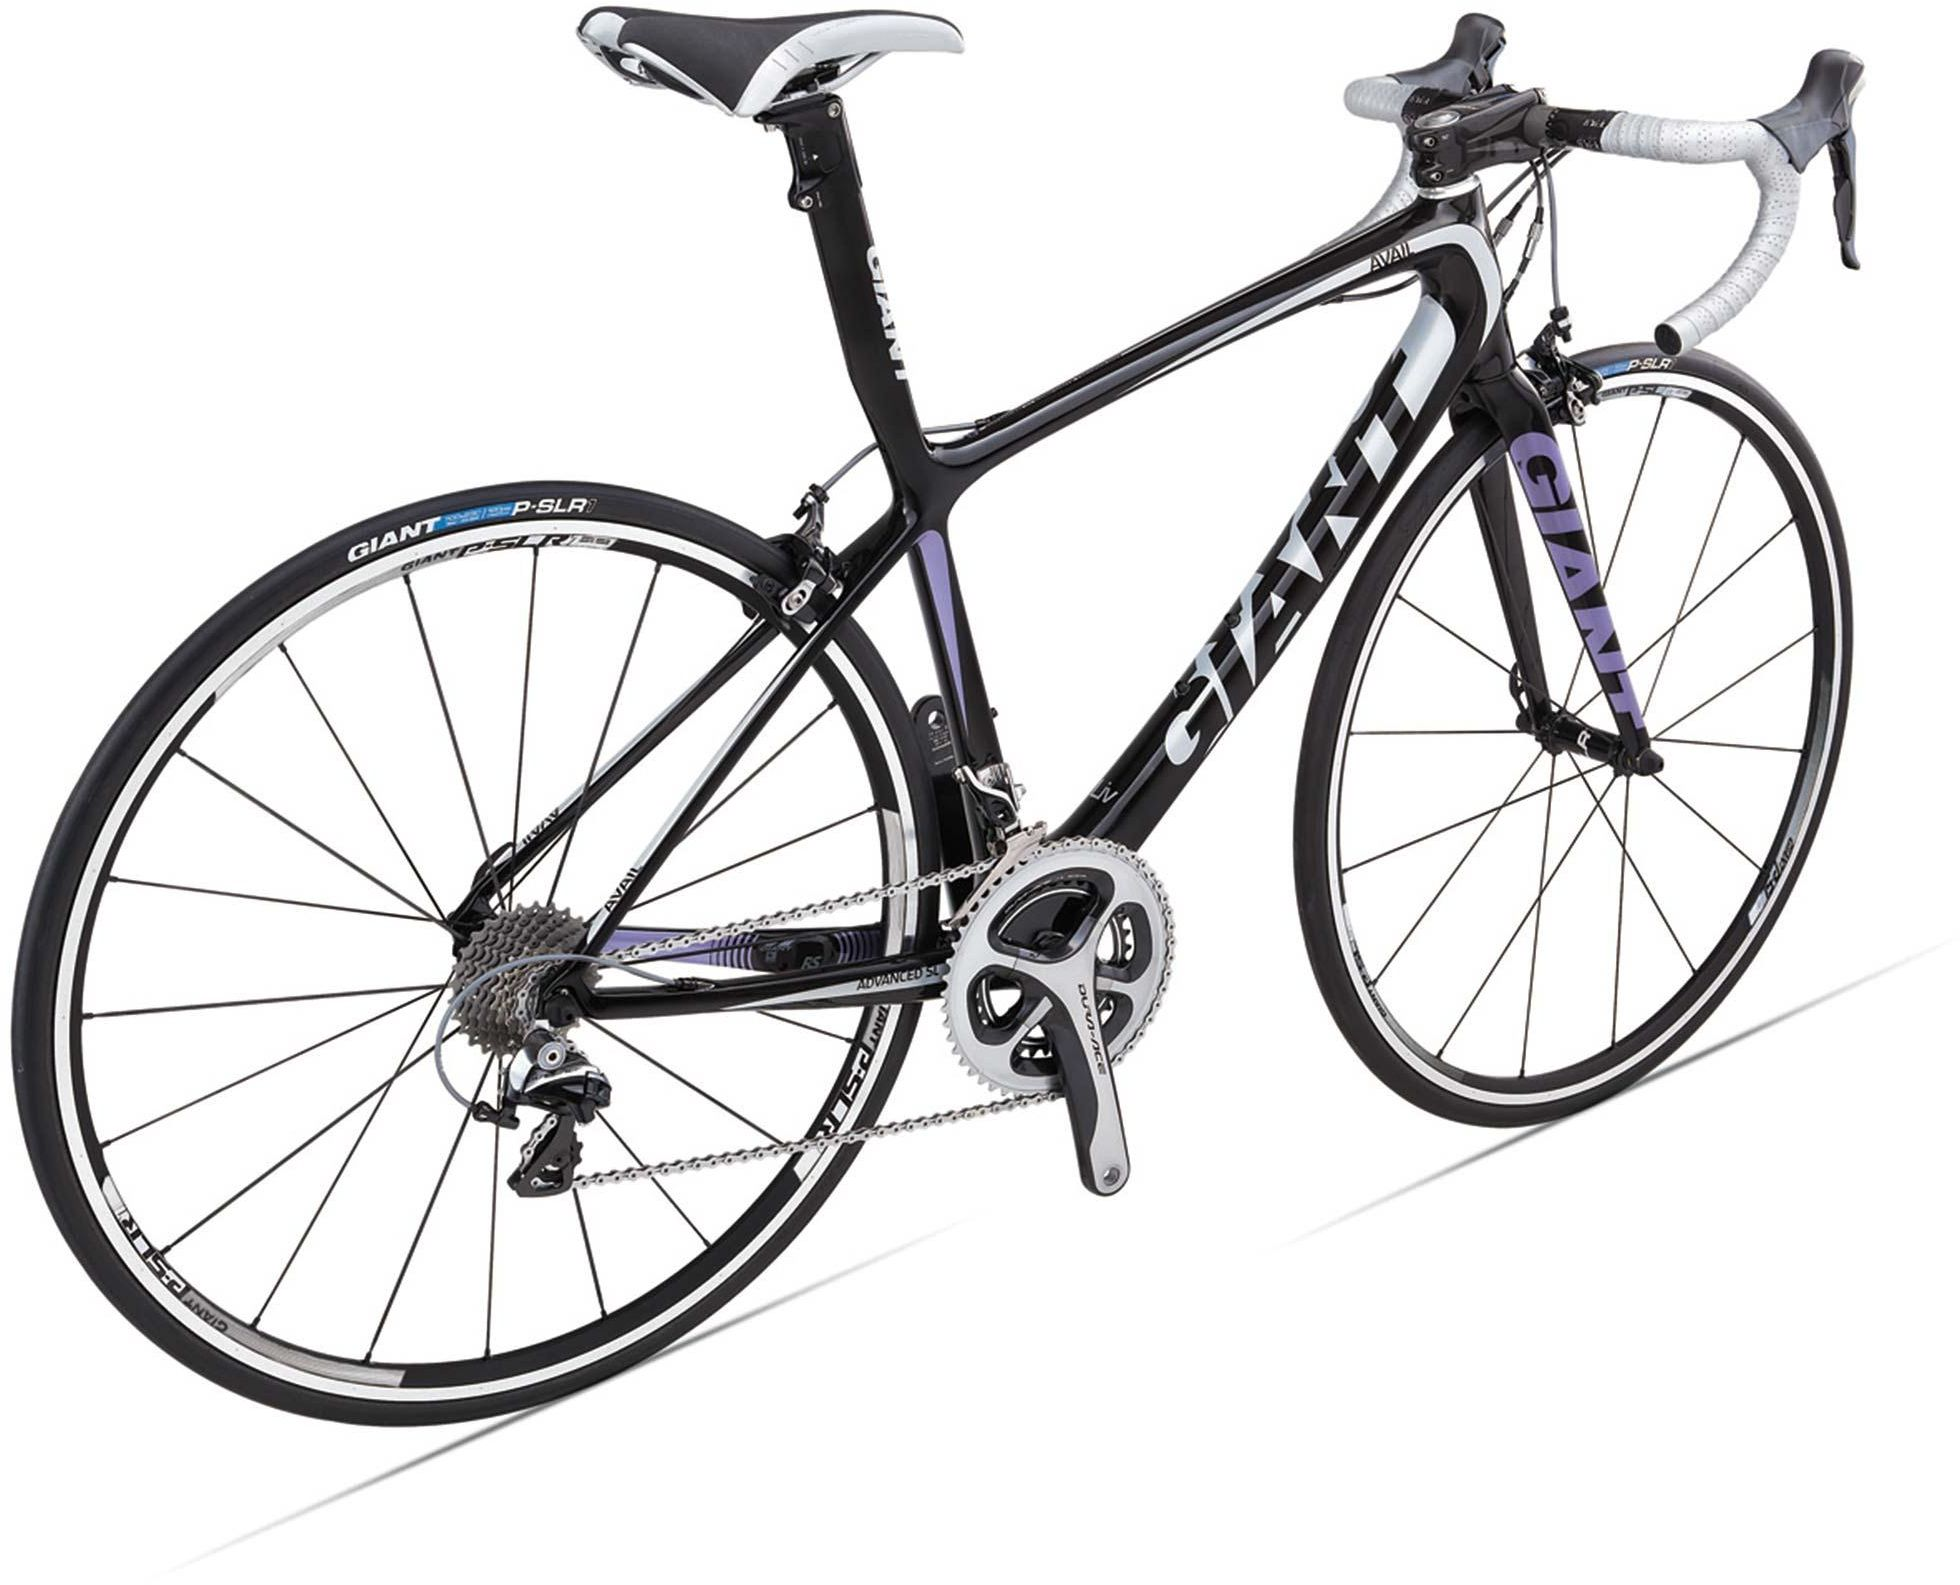 giant road bike size guide